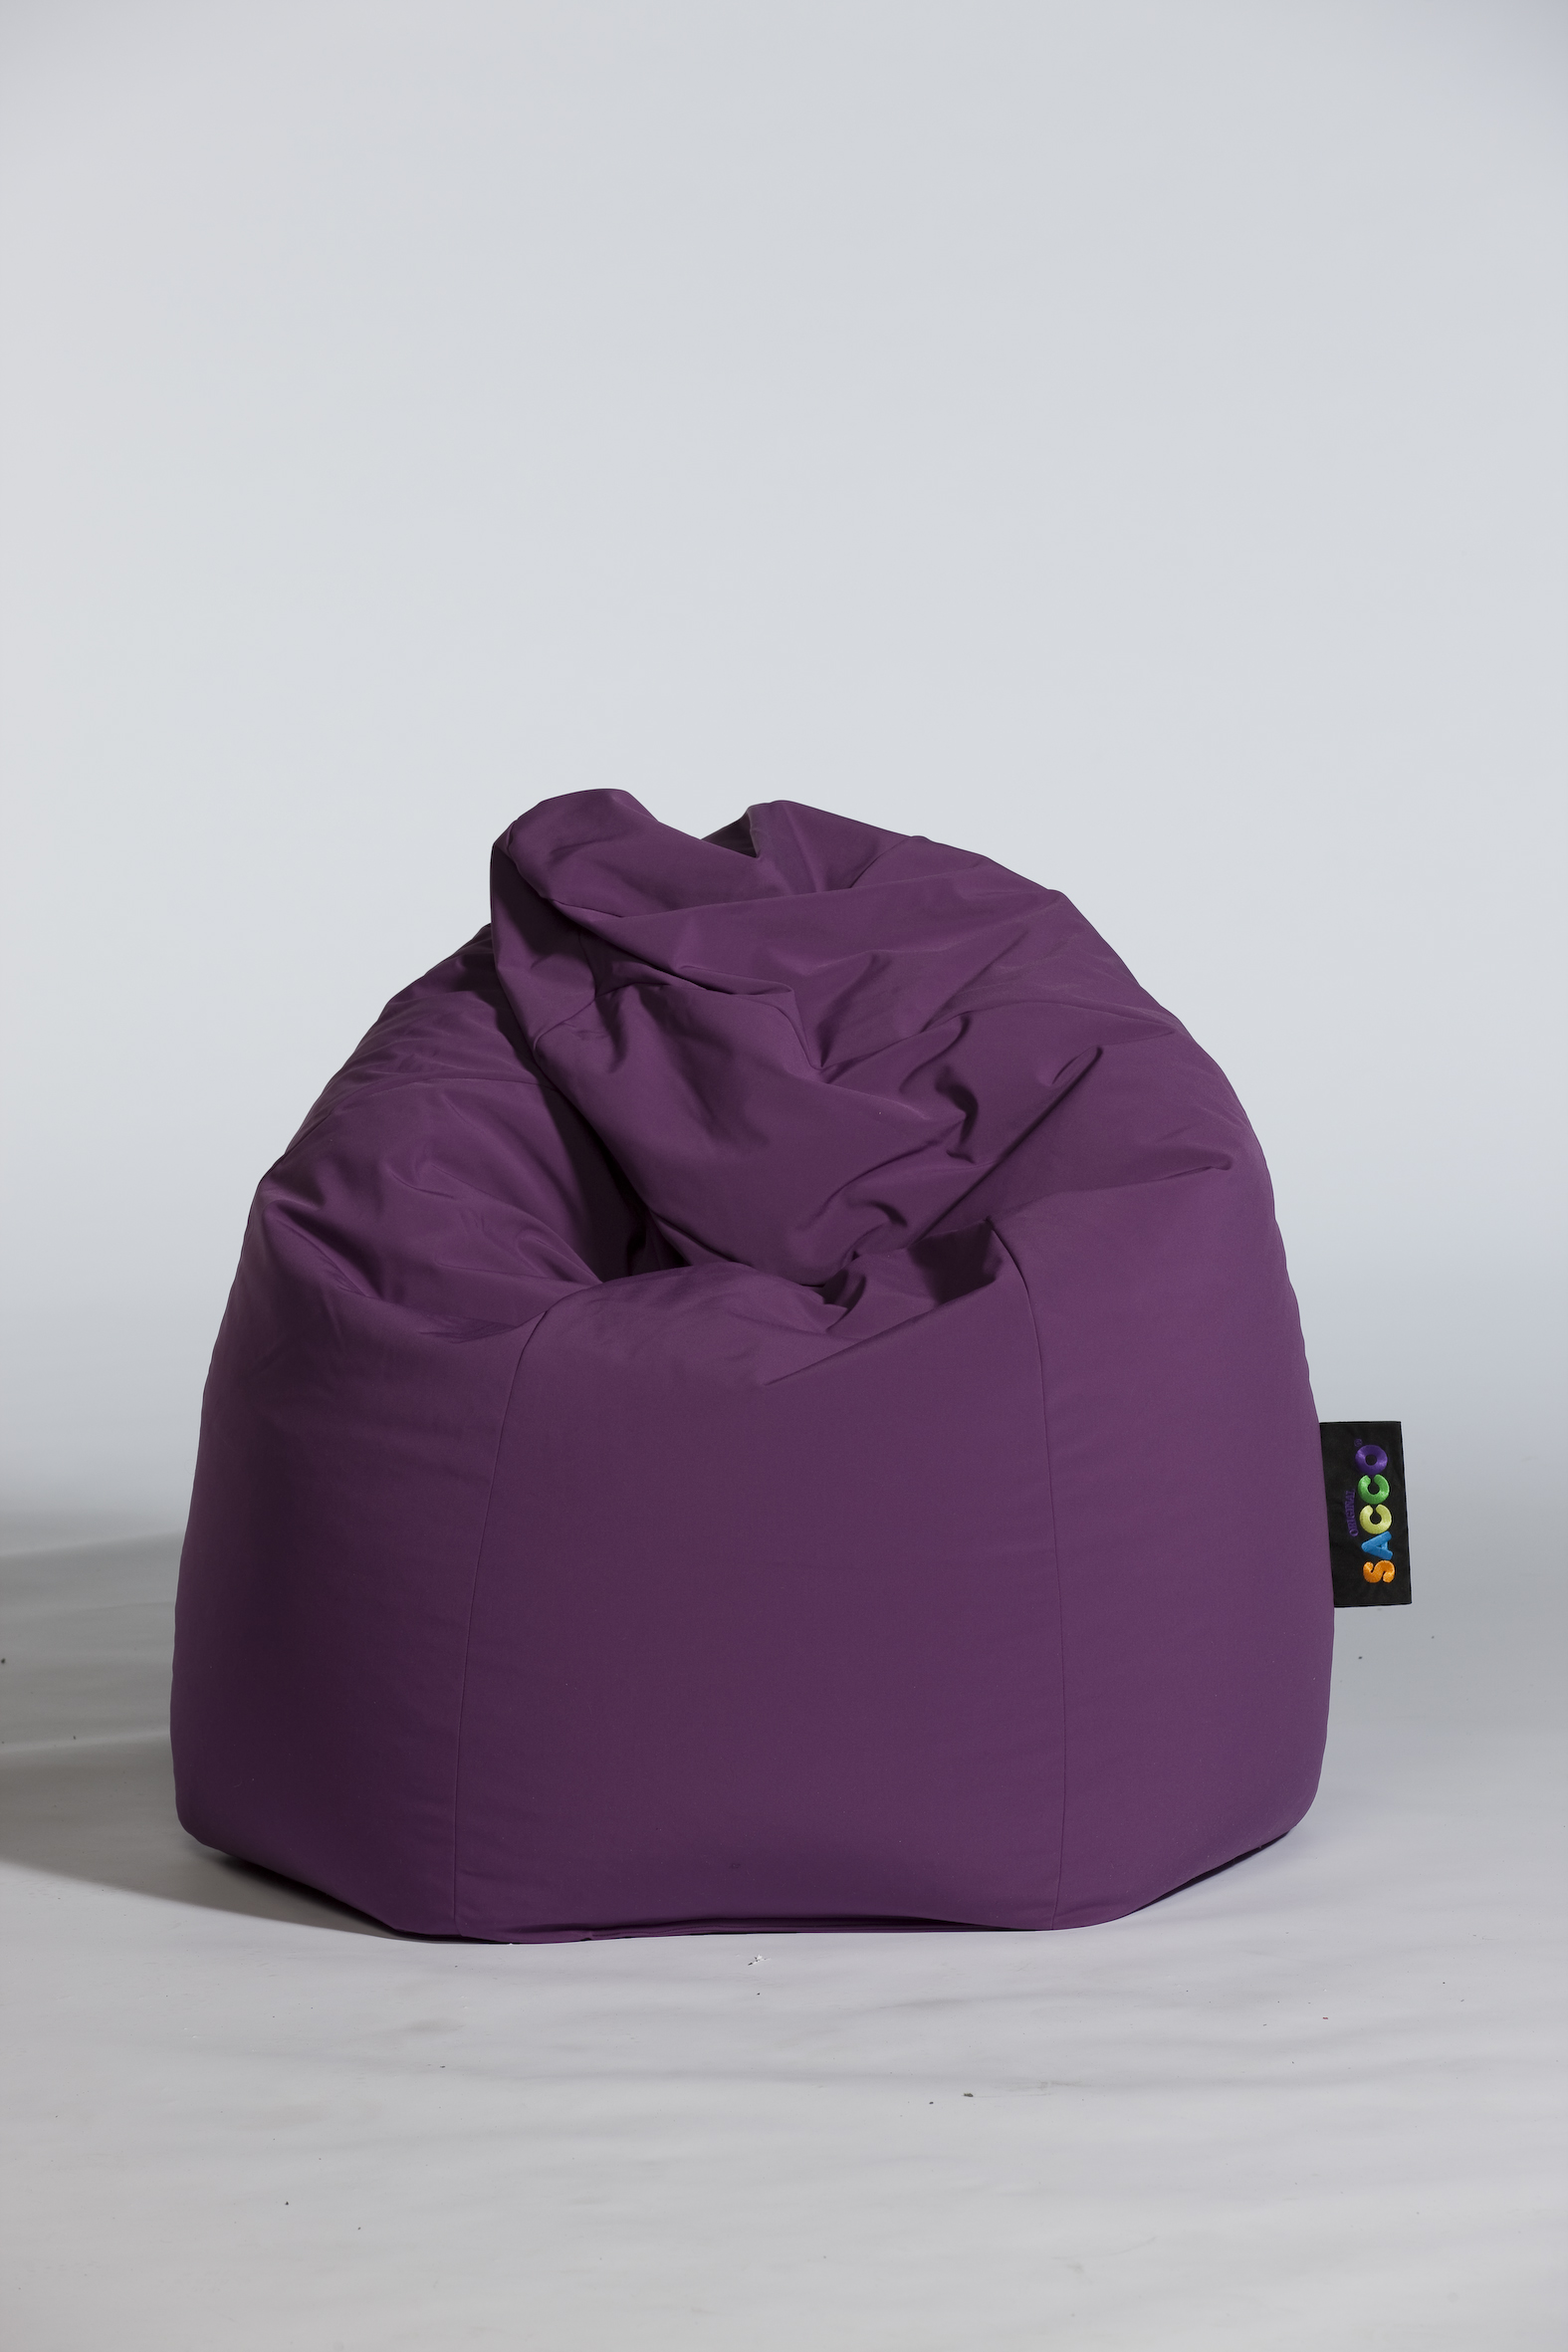 Sacco Medium Softshell purple (ver.1.0).jpg